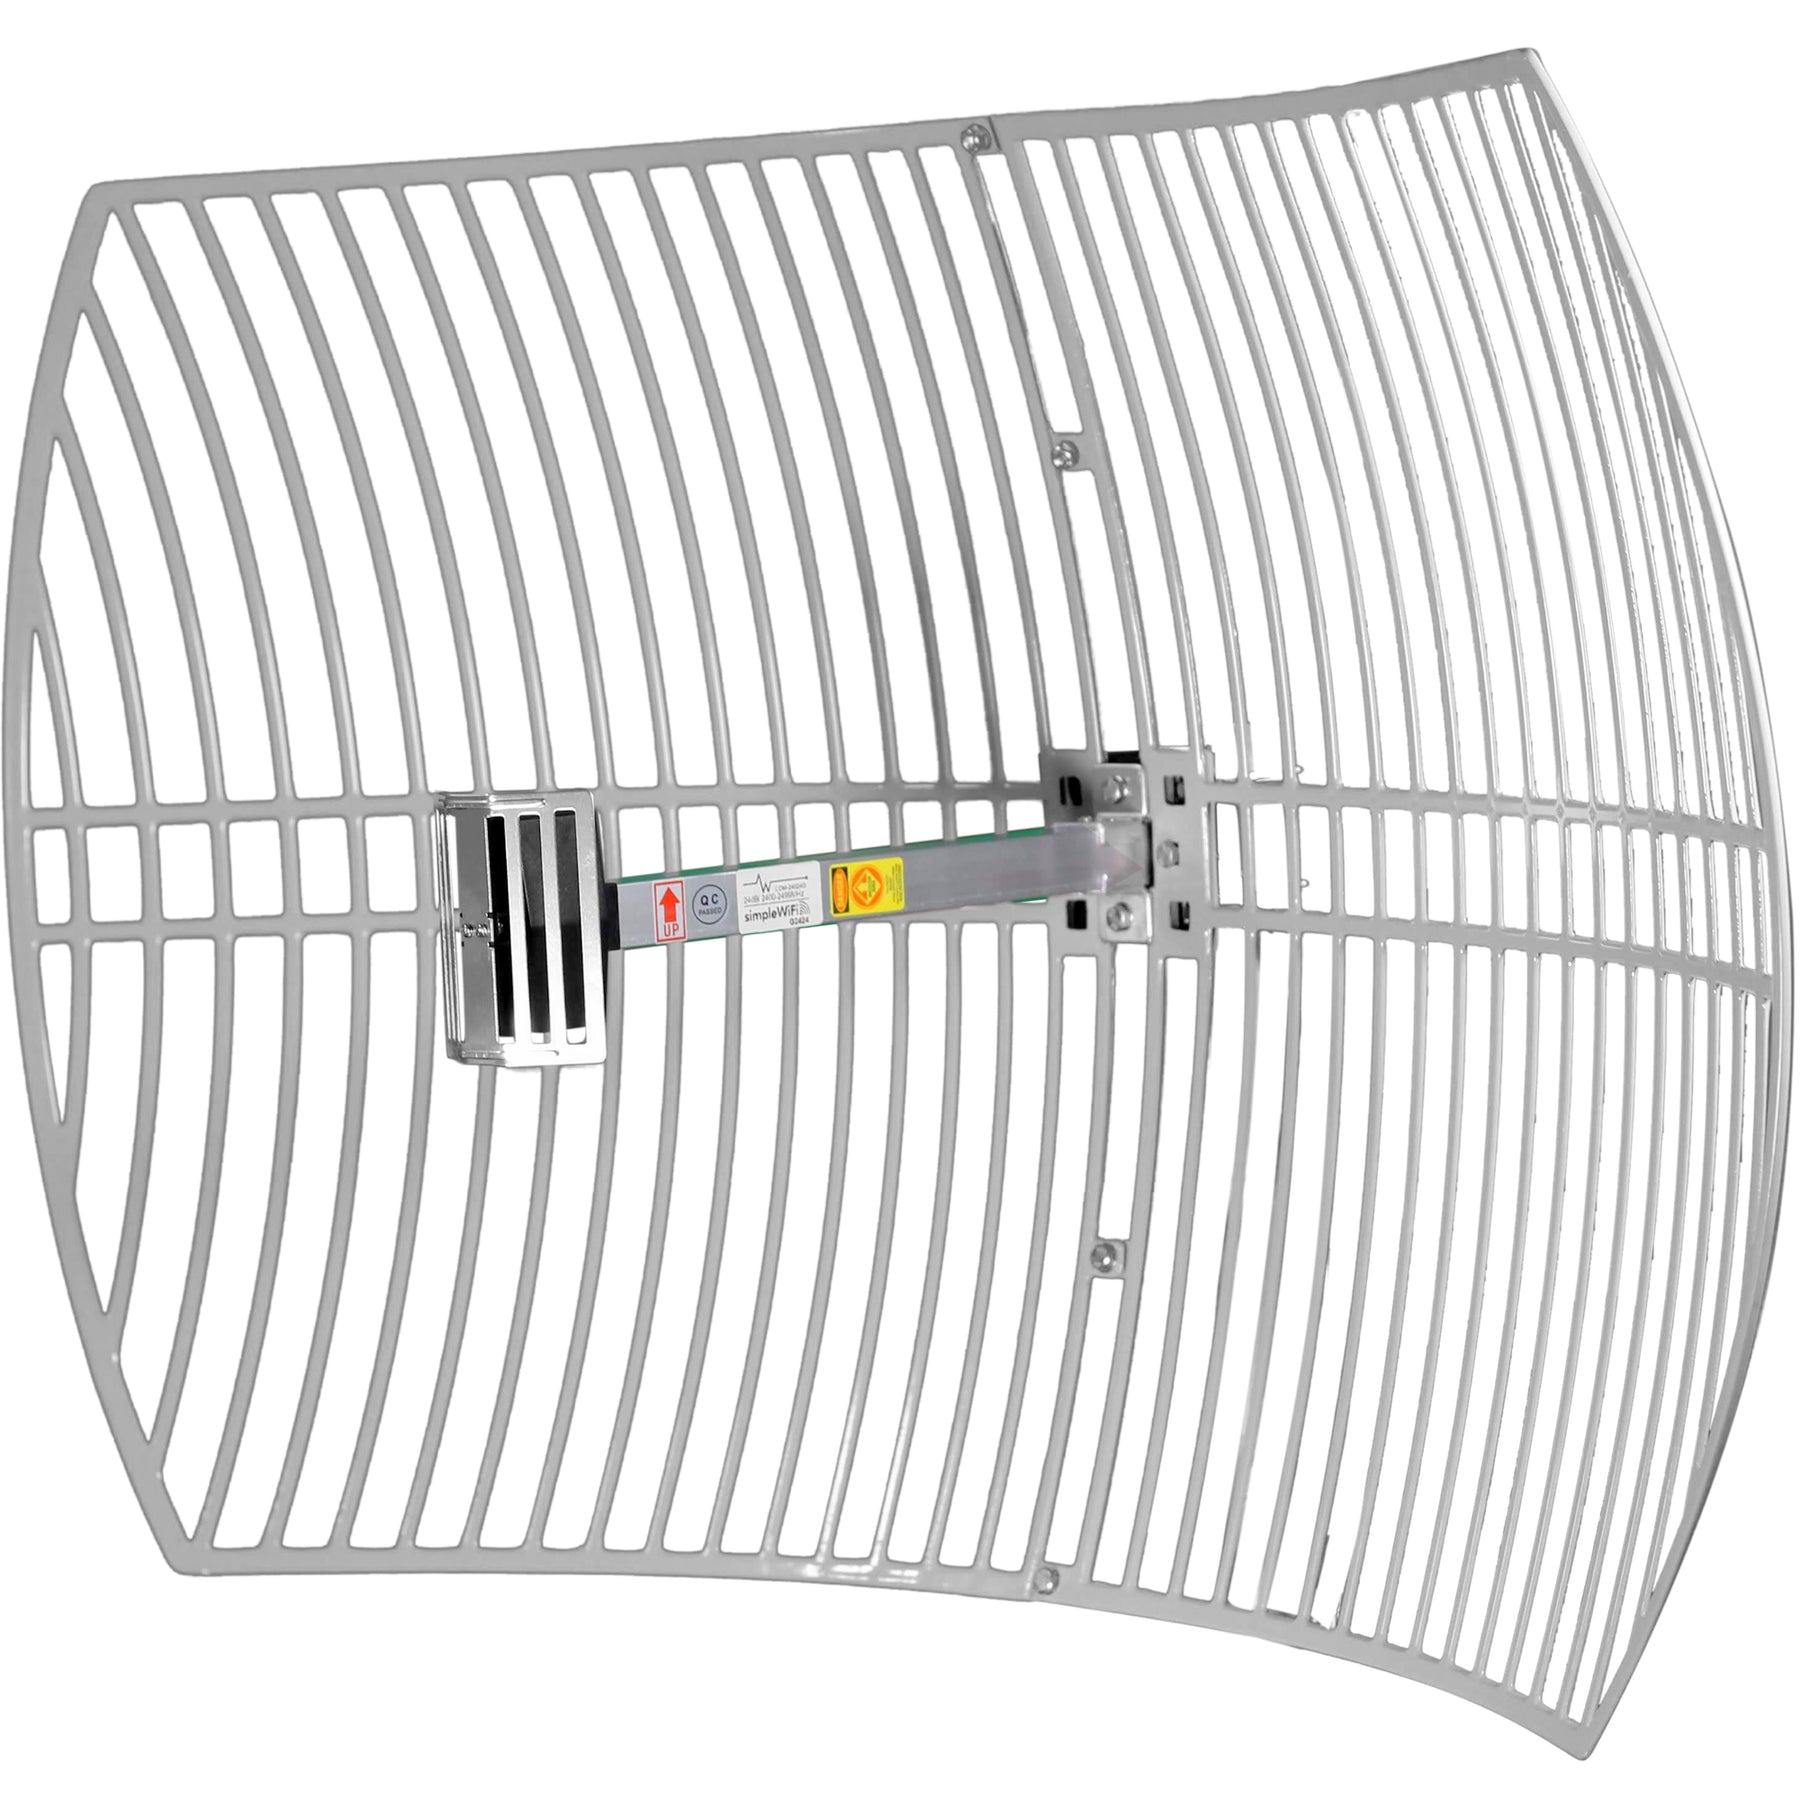 SimpleWiFi Ultra Long Range WiFi Extender - Directional Parabolic Grid  (High-Speed Signal Booster) Outdoor Antenna